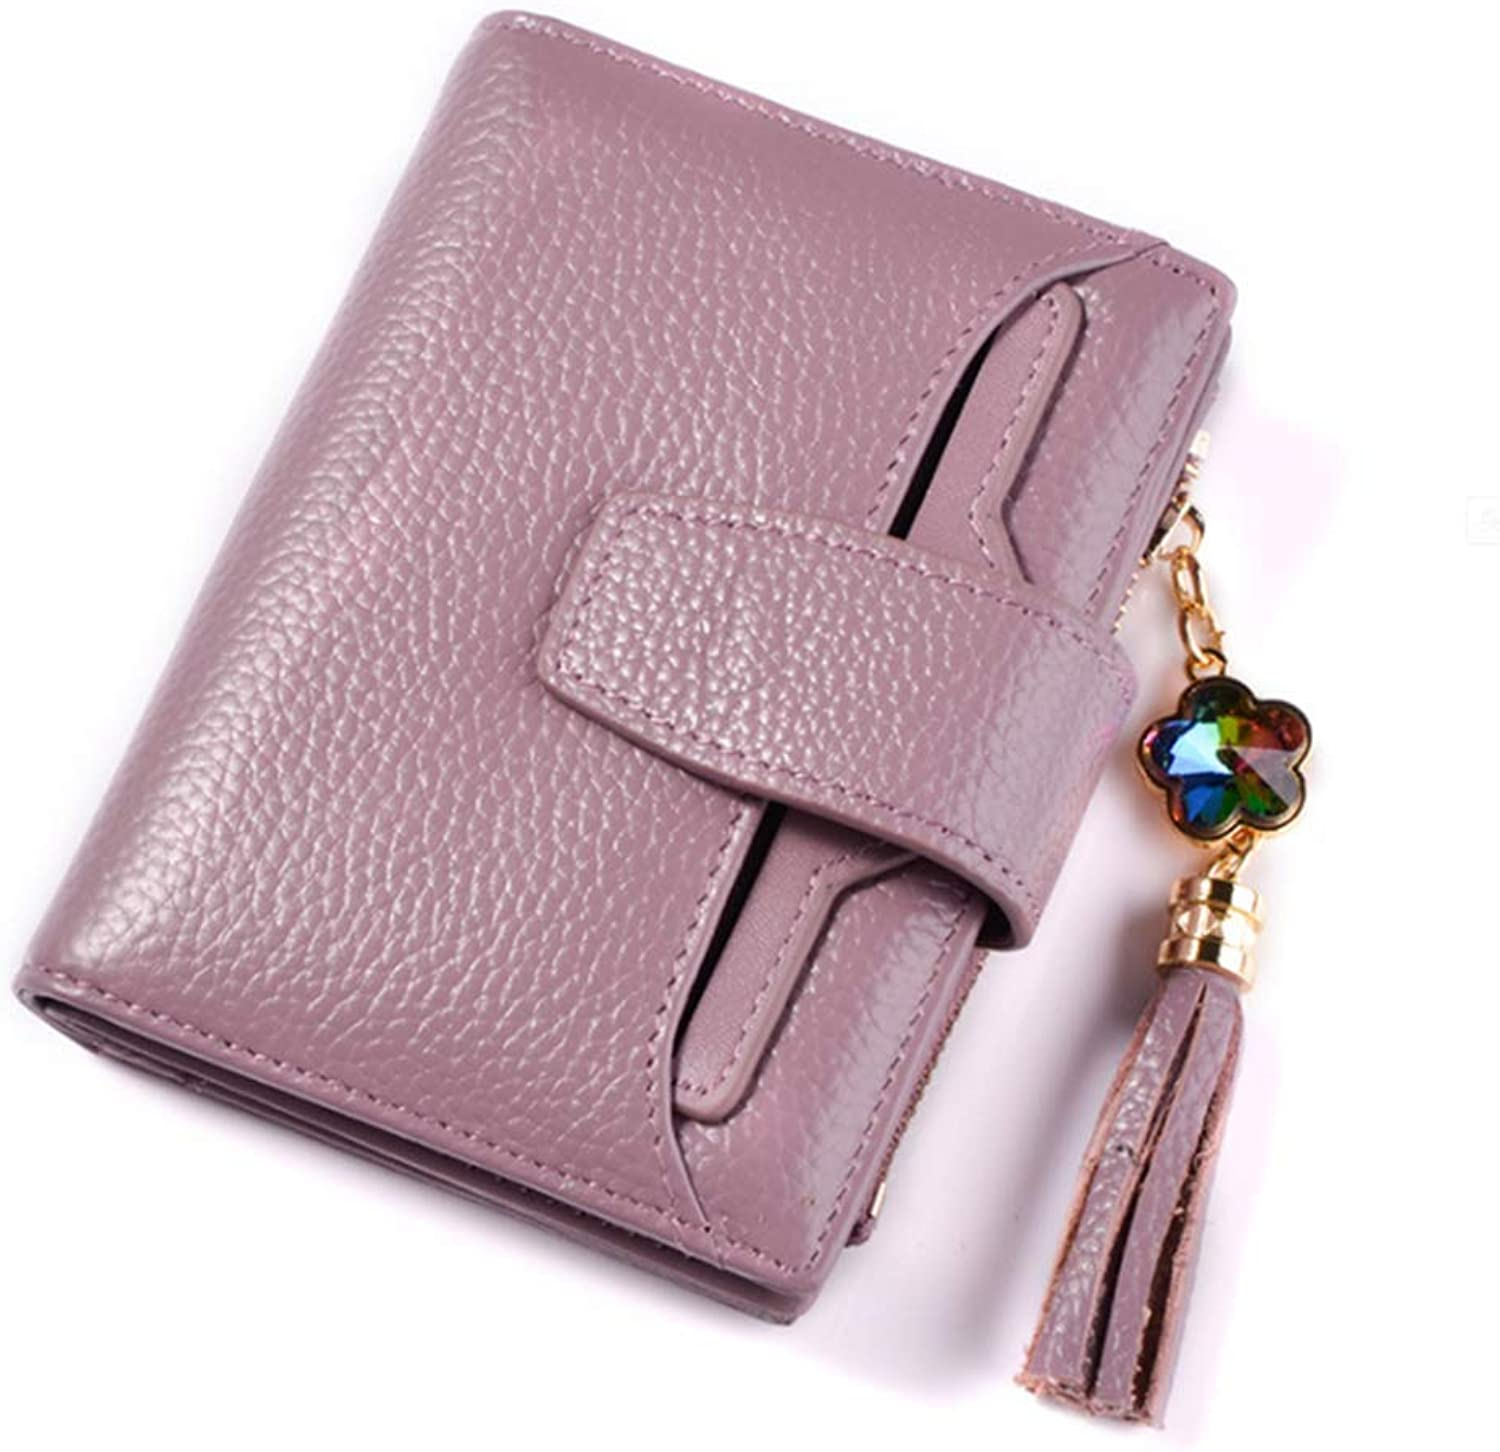 Wallet Women's Wallet Three Fold Tassel Wallet Four colors to Choose from